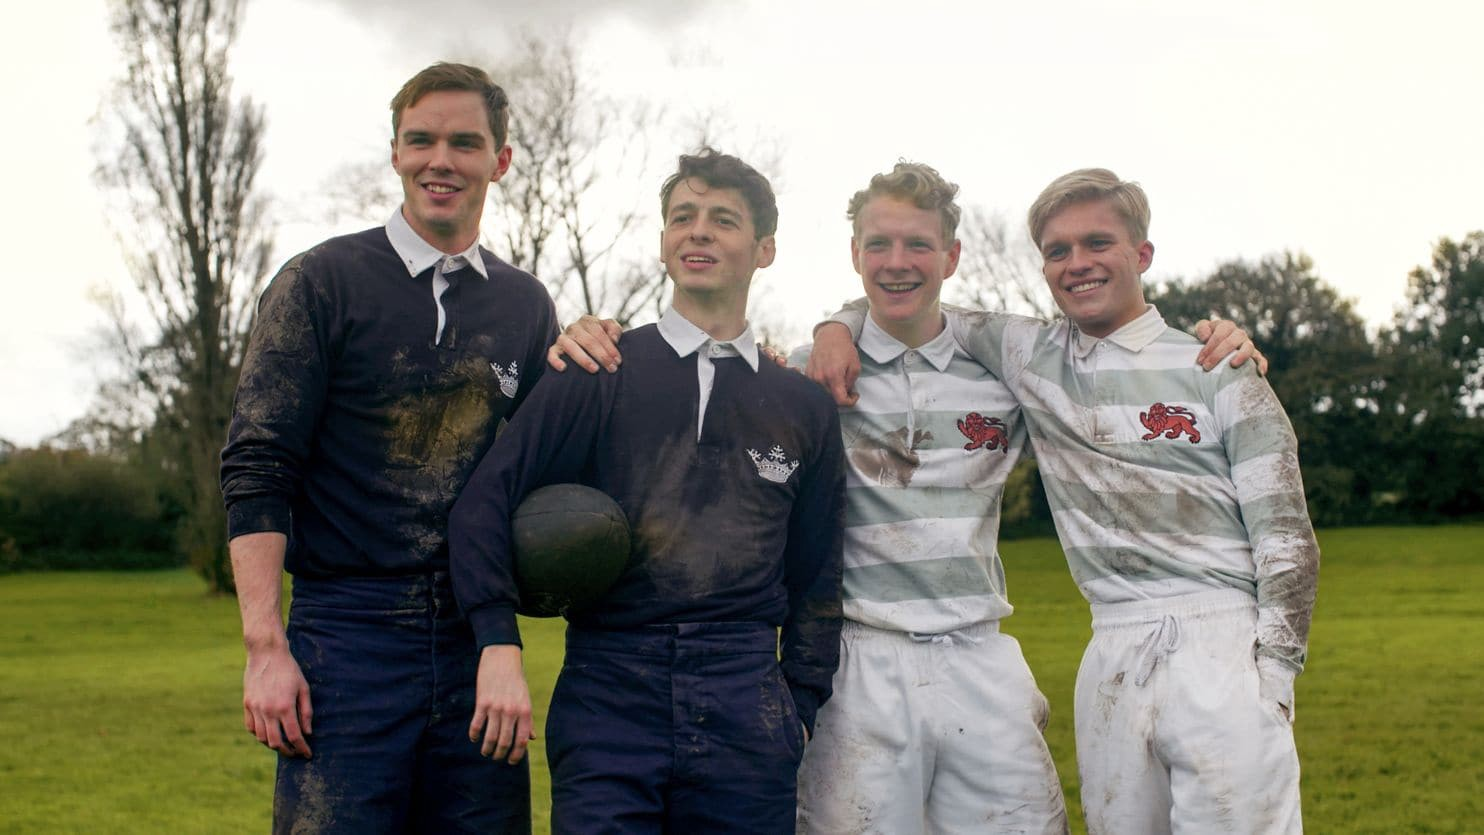 The members of the TCBS on the rugby field - (l to r) J.R.R. Tolkien (Nicholas Hoult), Geoffrey Smith (Anthony Boyle), Robert Gilson (Patrick Gibson) and Christopher Wiseman (Tom Glynn-Carney) in Tolkien (2019)